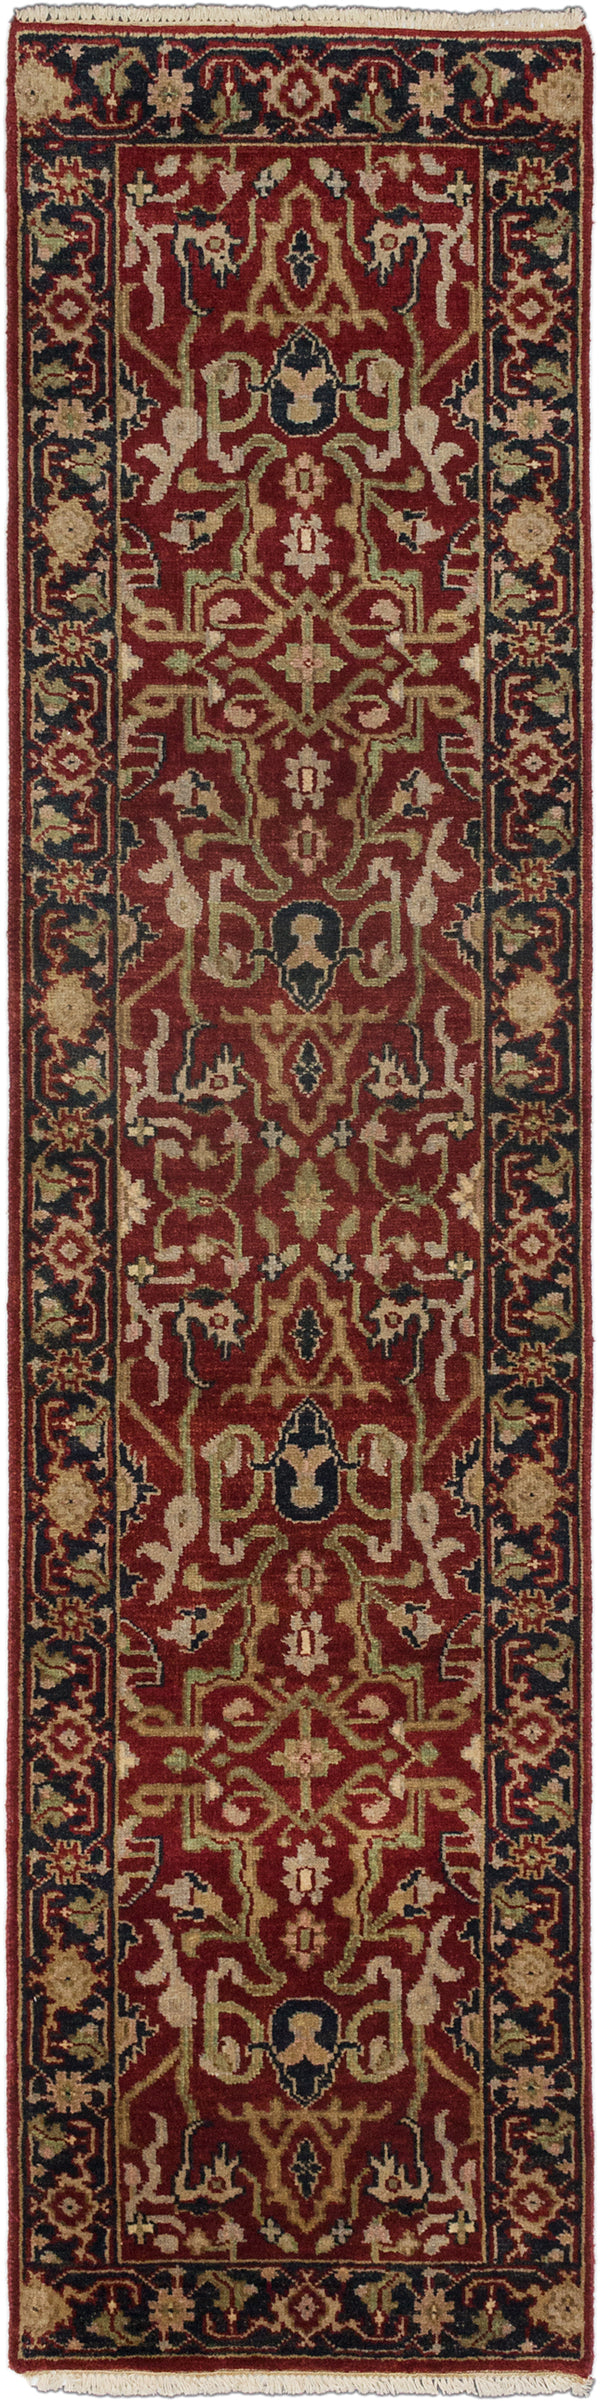 "Hand-knotted Indian Floral  Traditional Serapi-Heritage Runner rug  Black, Dark Burgundy 2'6 x 10'0"" """